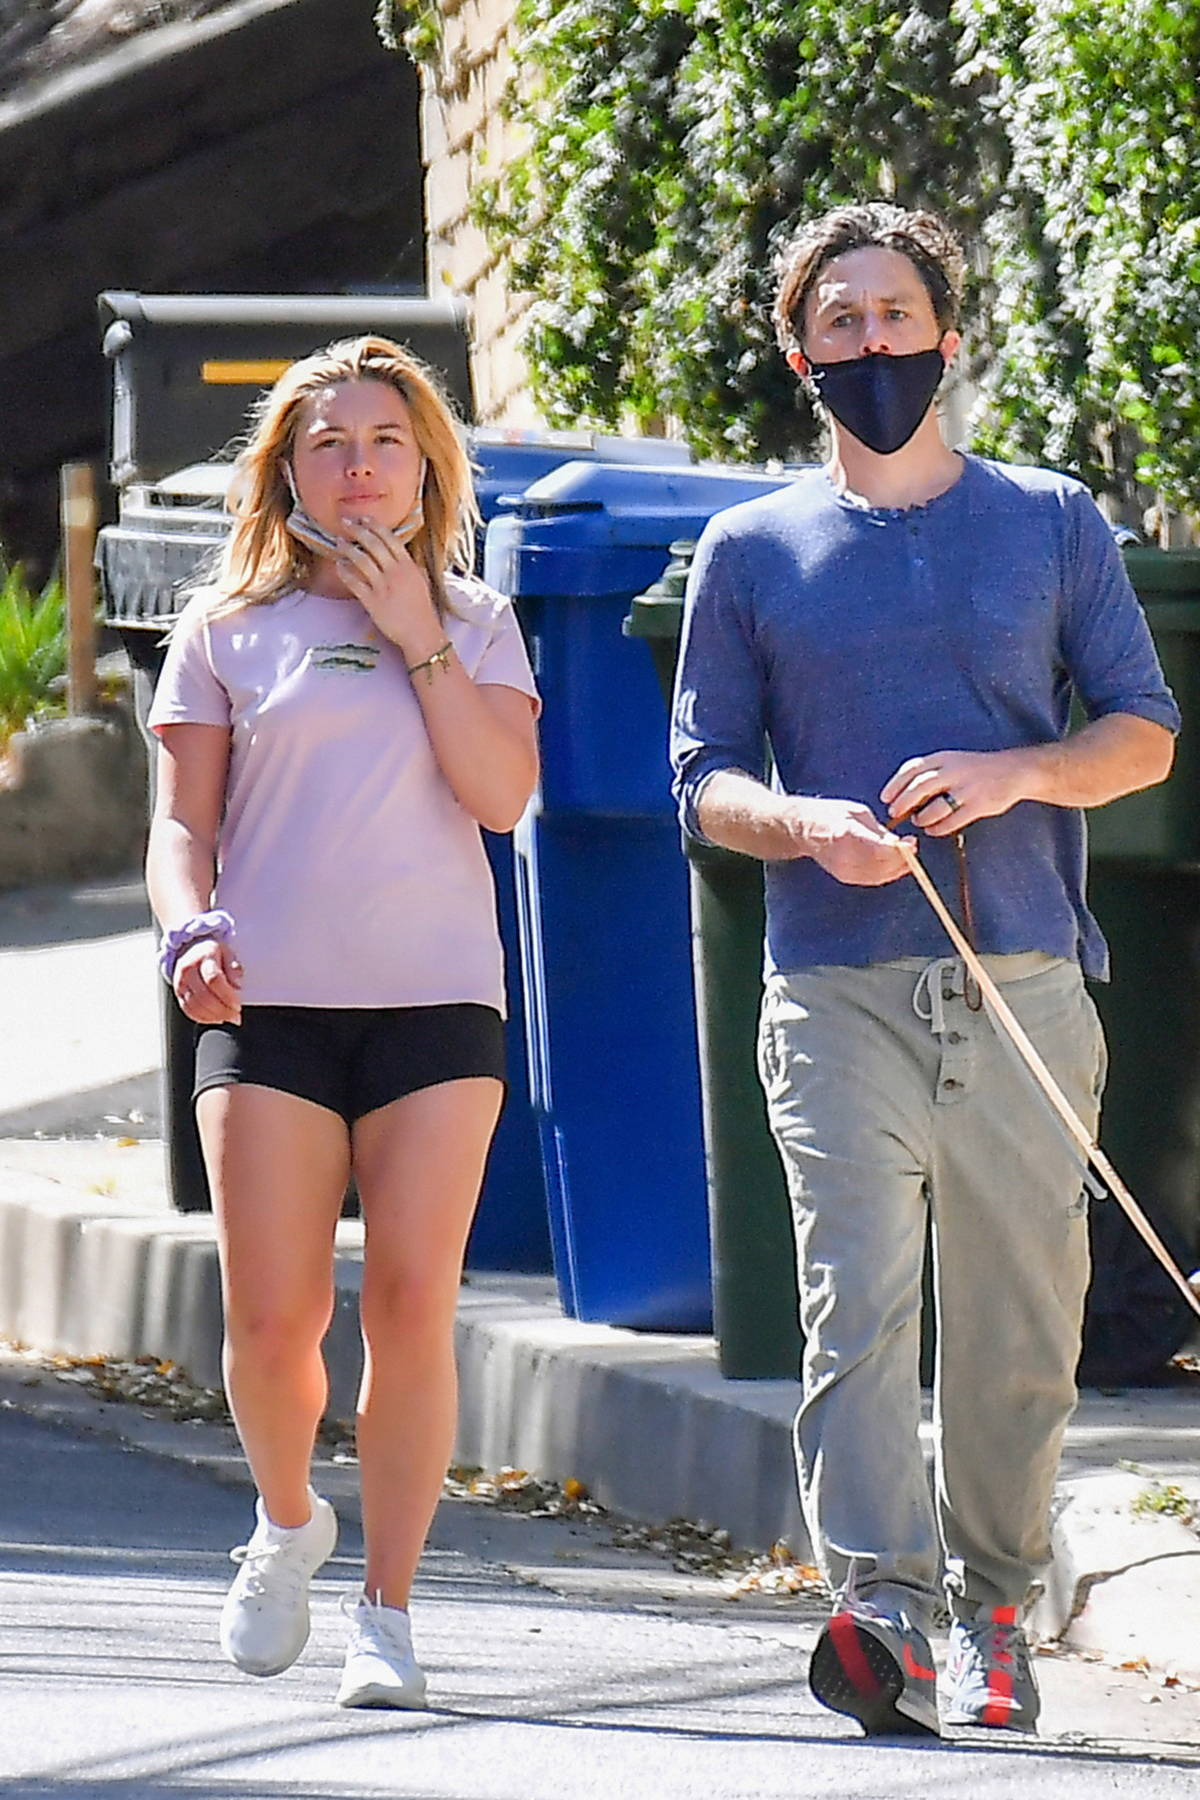 Florence Pugh and Zach Braff step out to walk their dog around the neighborhood in Los Angeles